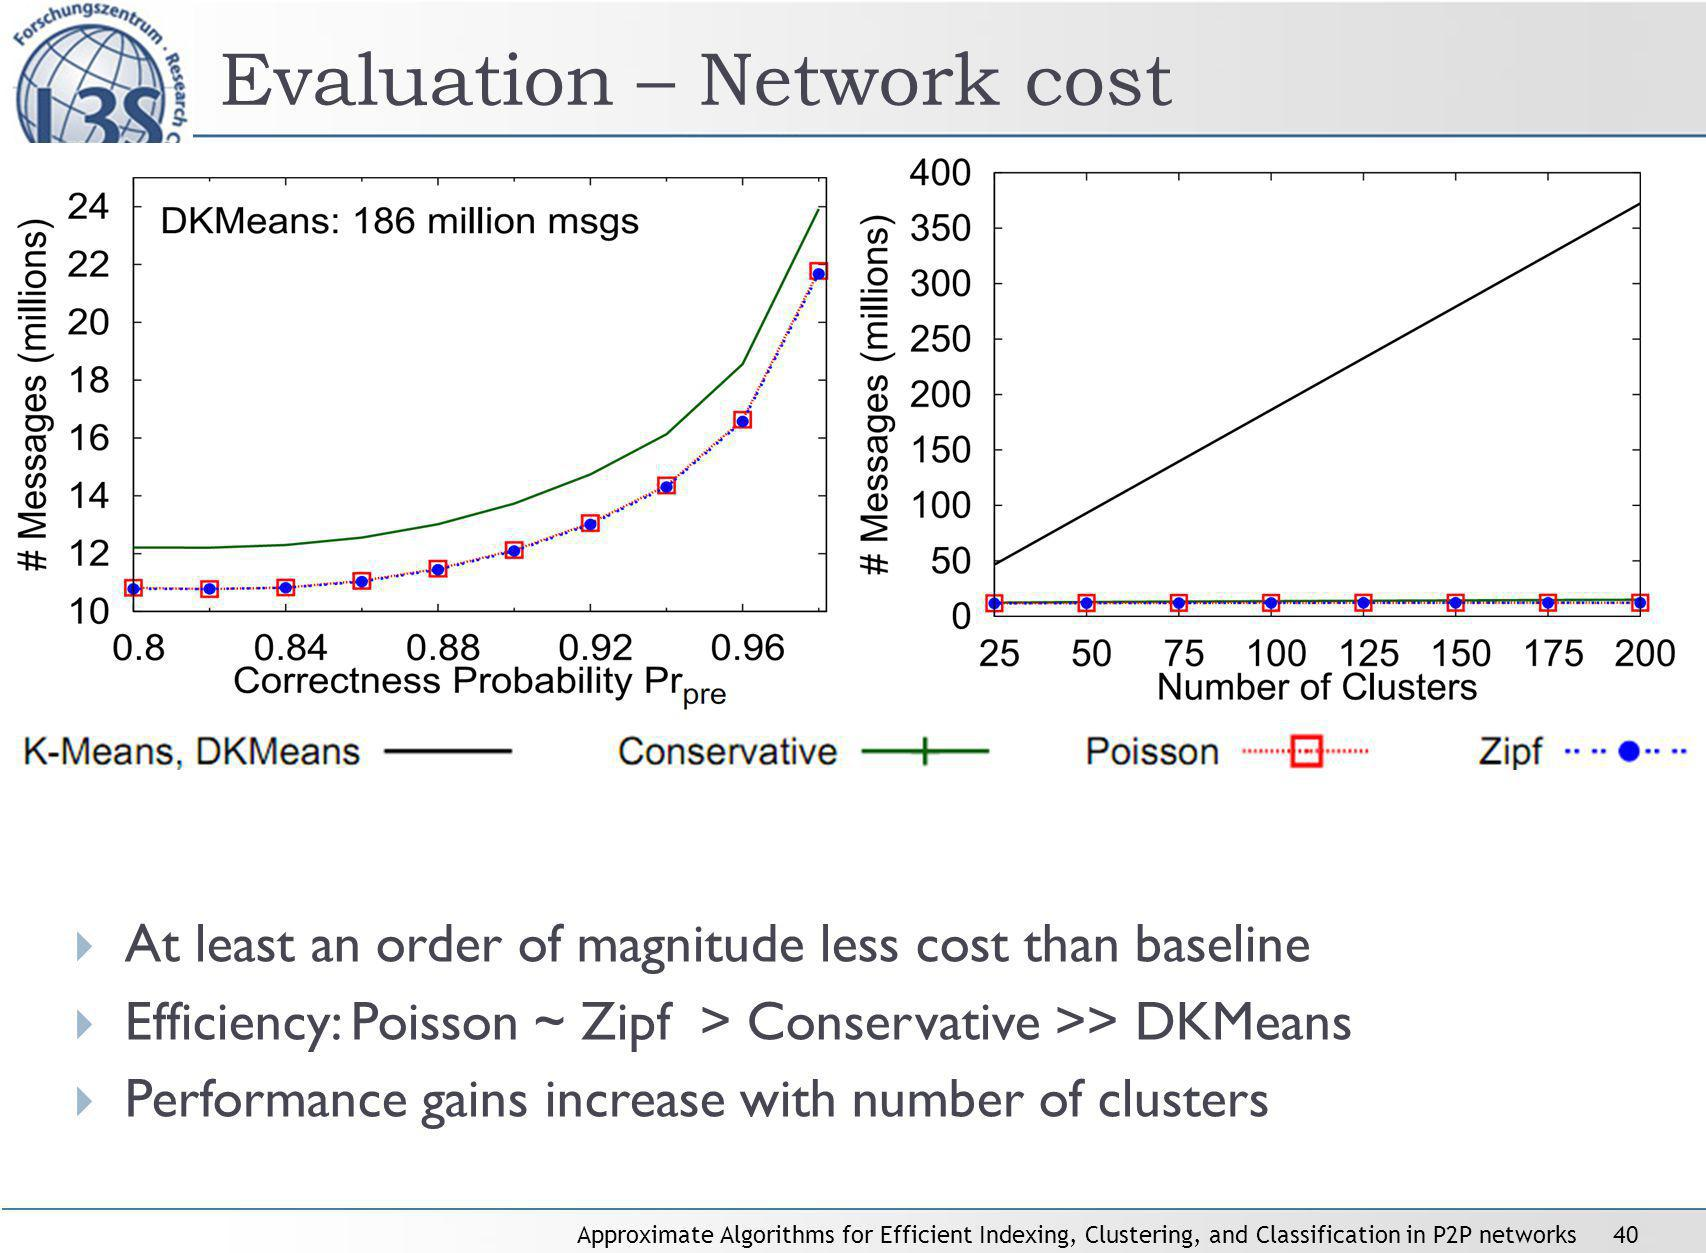 Approximate Algorithms for Efficient Indexing, Clustering, and Classification in P2P networks40 Evaluation – Network cost At least an order of magnitude less cost than baseline Efficiency: Poisson ~ Zipf > Conservative >> DKMeans Performance gains increase with number of clusters